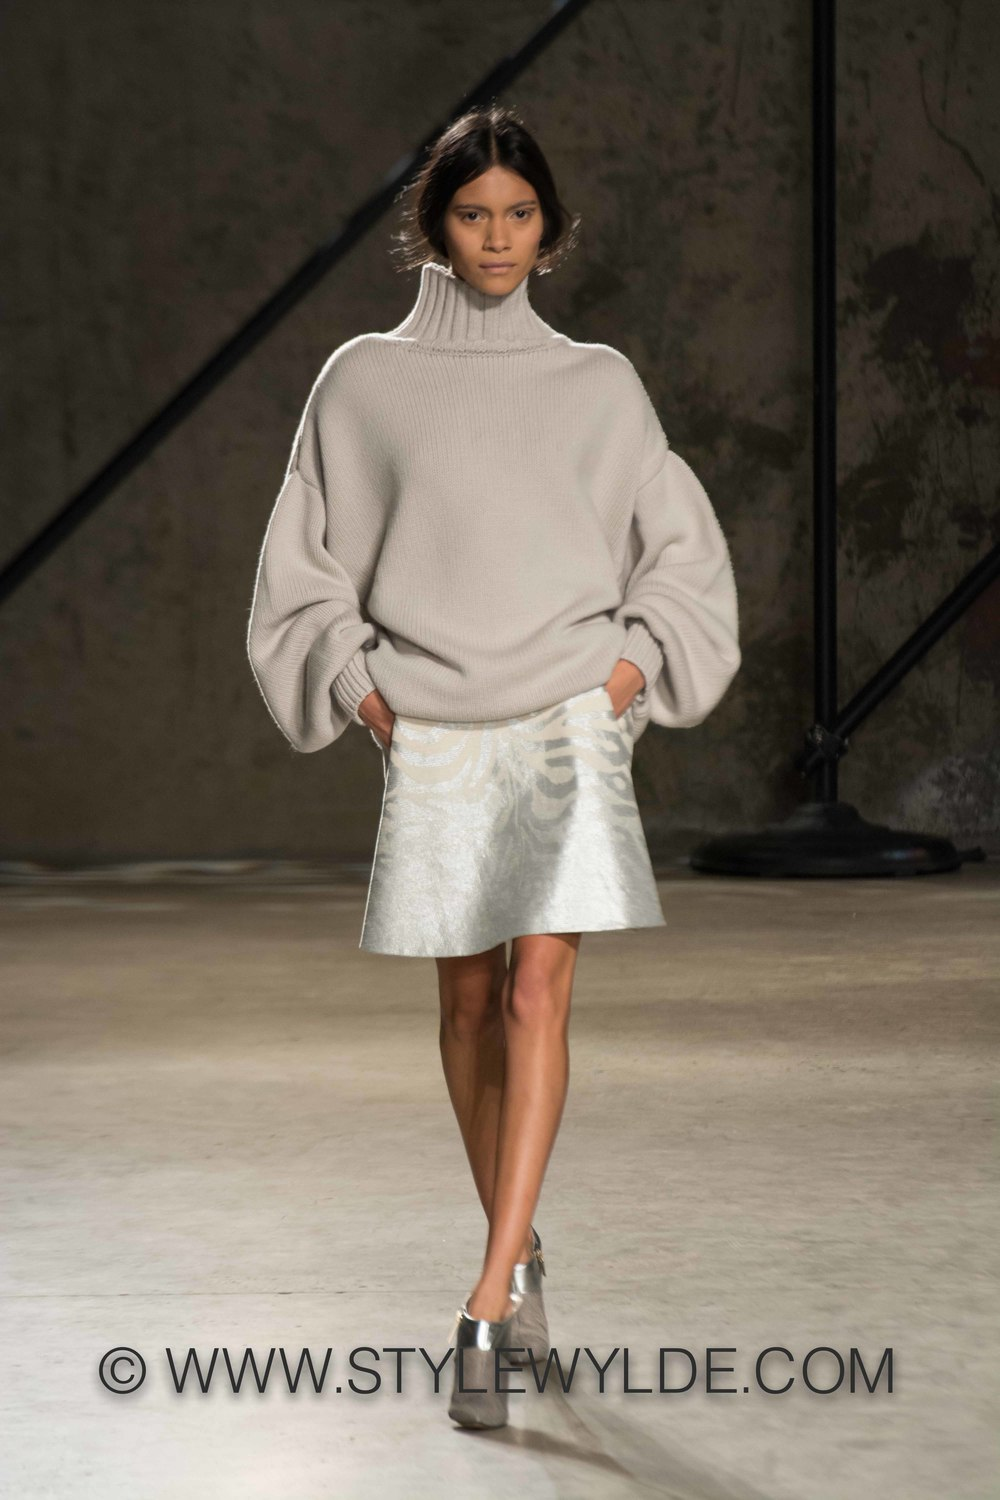 stylewylde_sally_lapointe_fw_2014-19.jpg